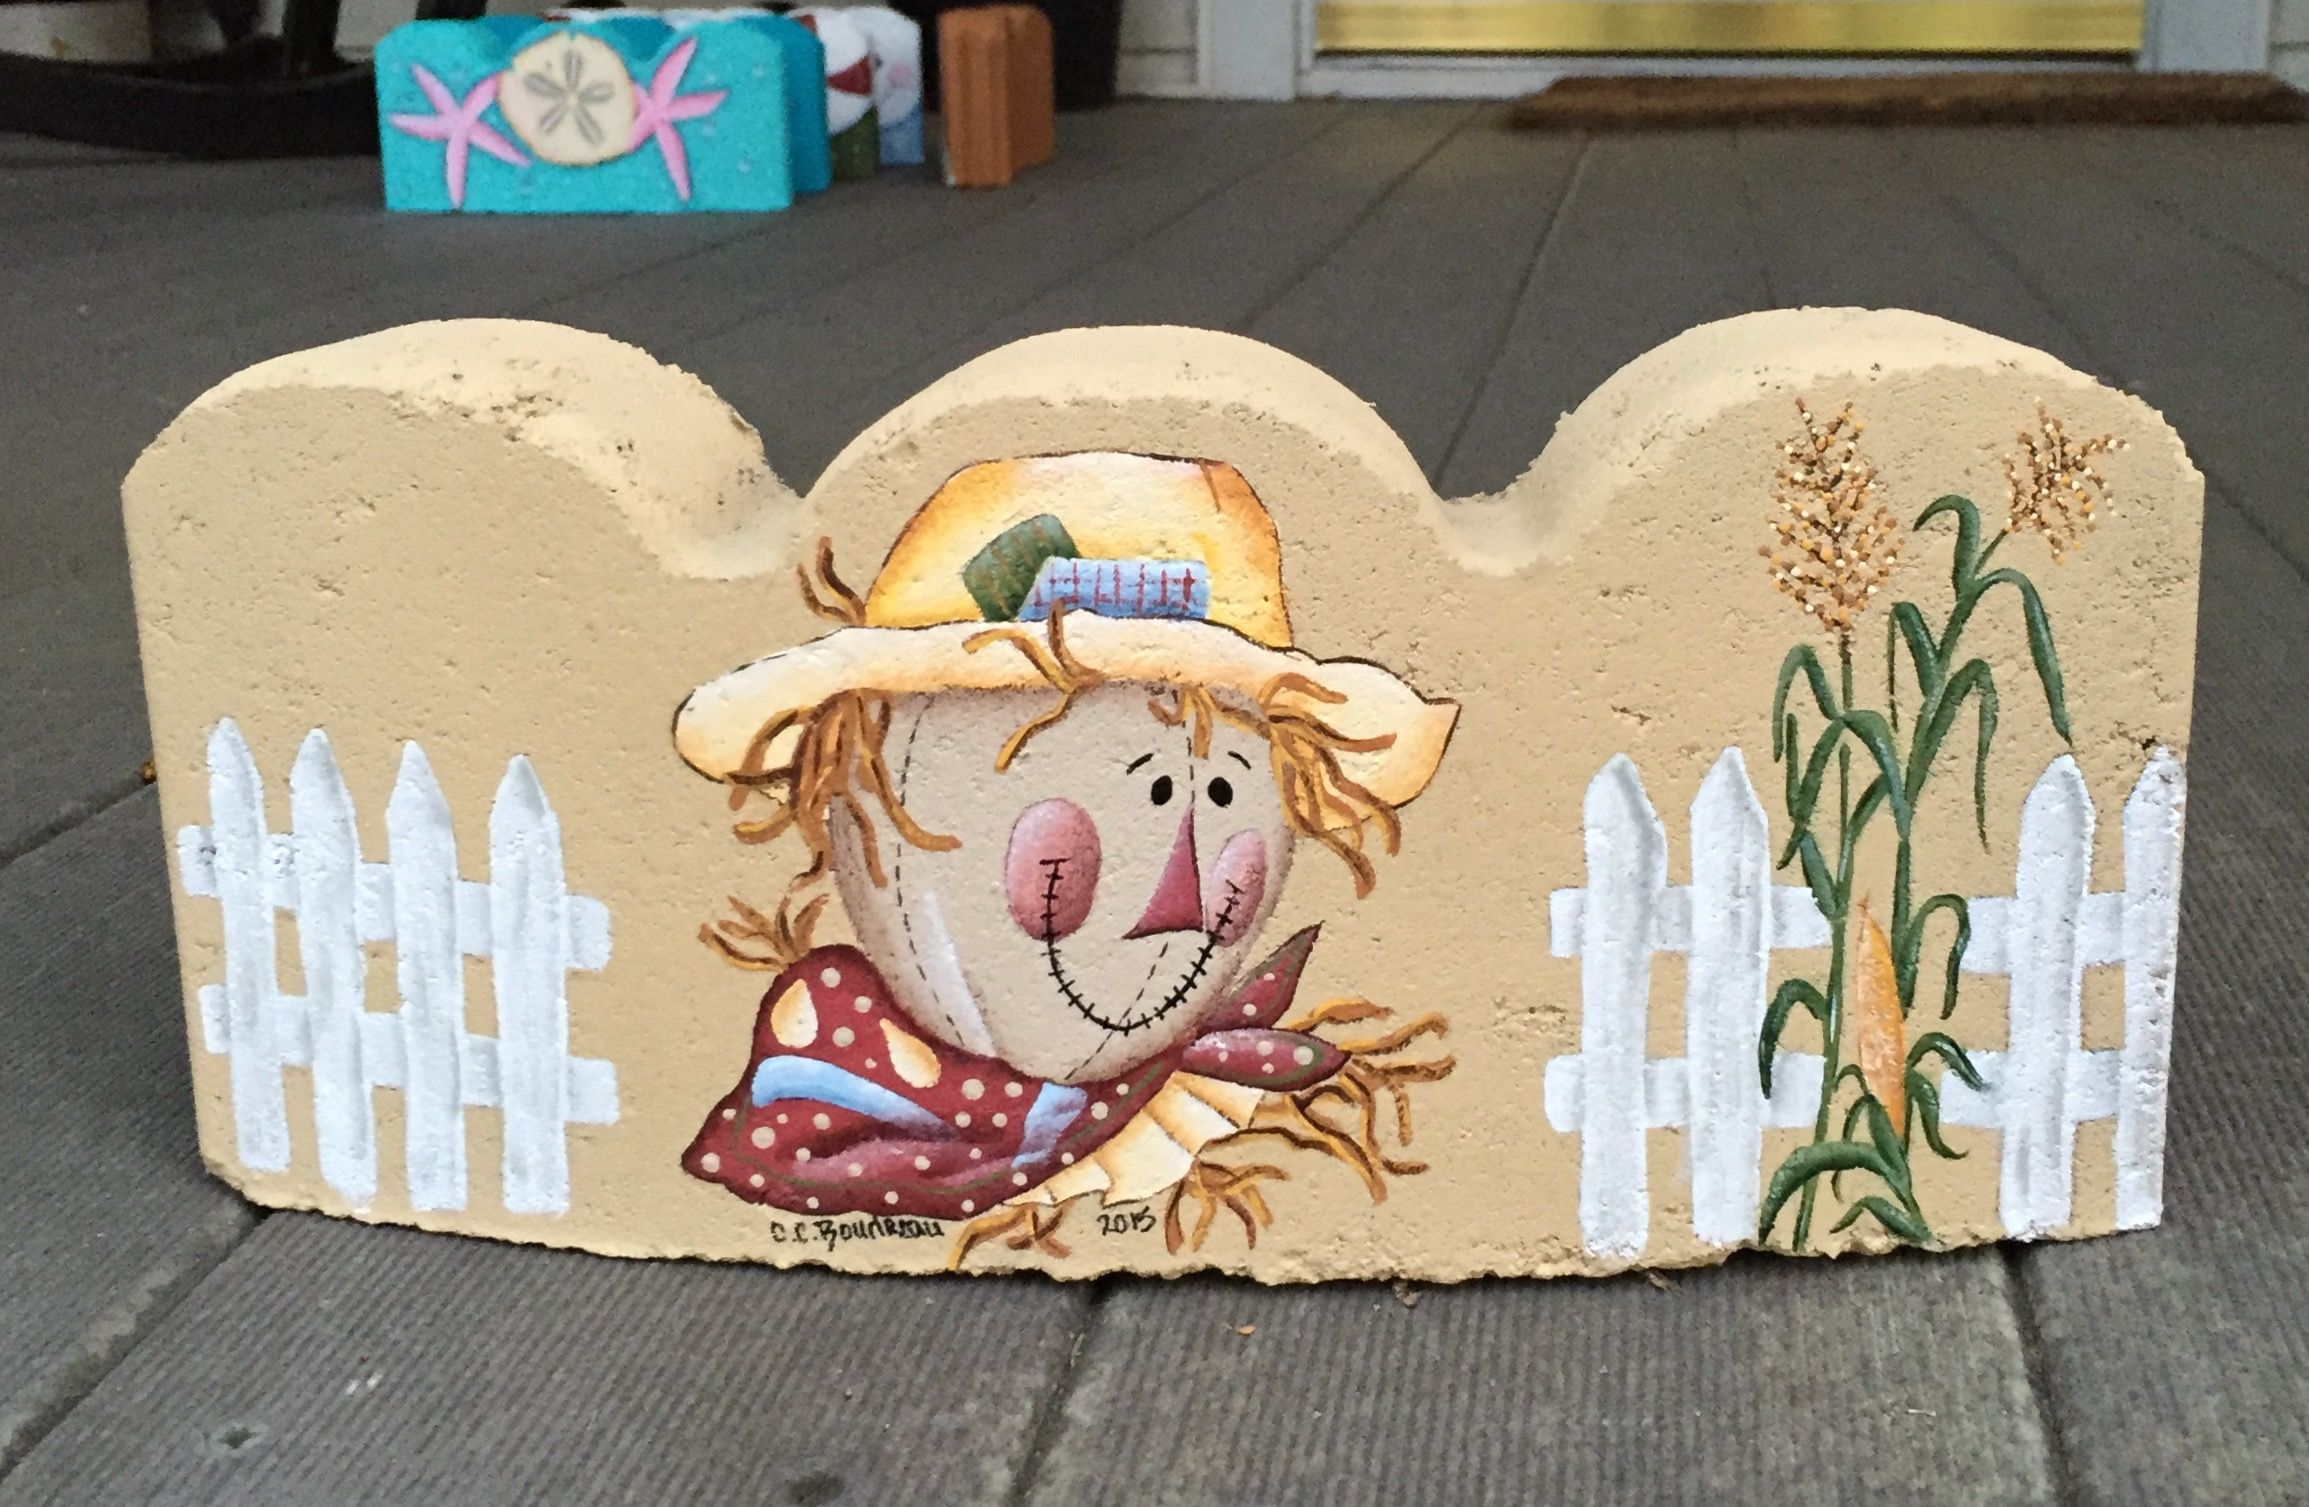 Pin By Kathy Sheffer On Painted By Me Brick Crafts Painted Bricks Crafts Painted Pavers